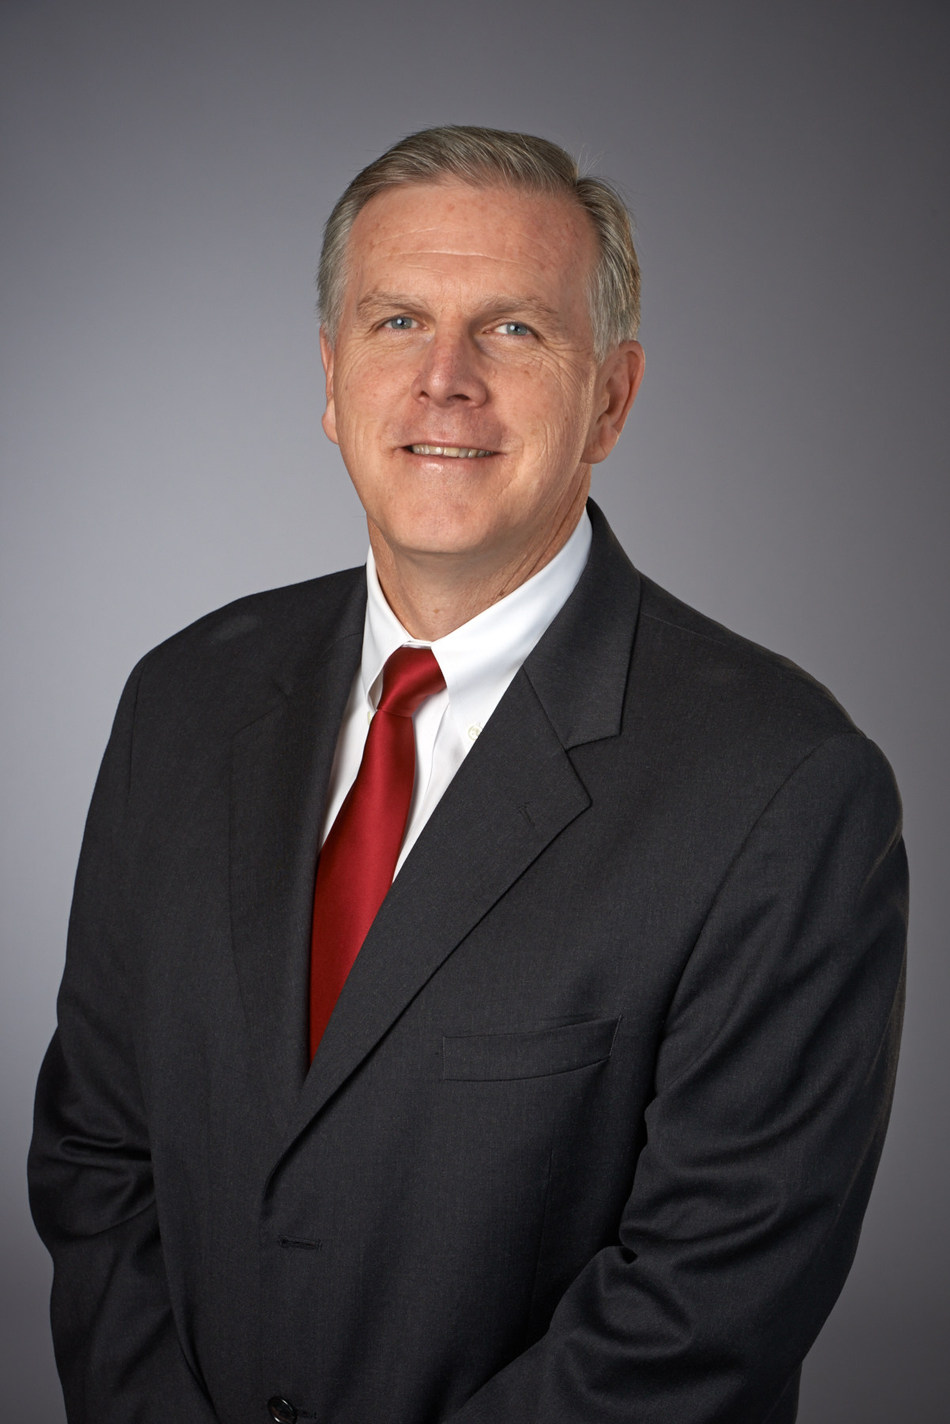 Kevin J. Wheeler has been elected to the company's Board of Directors.